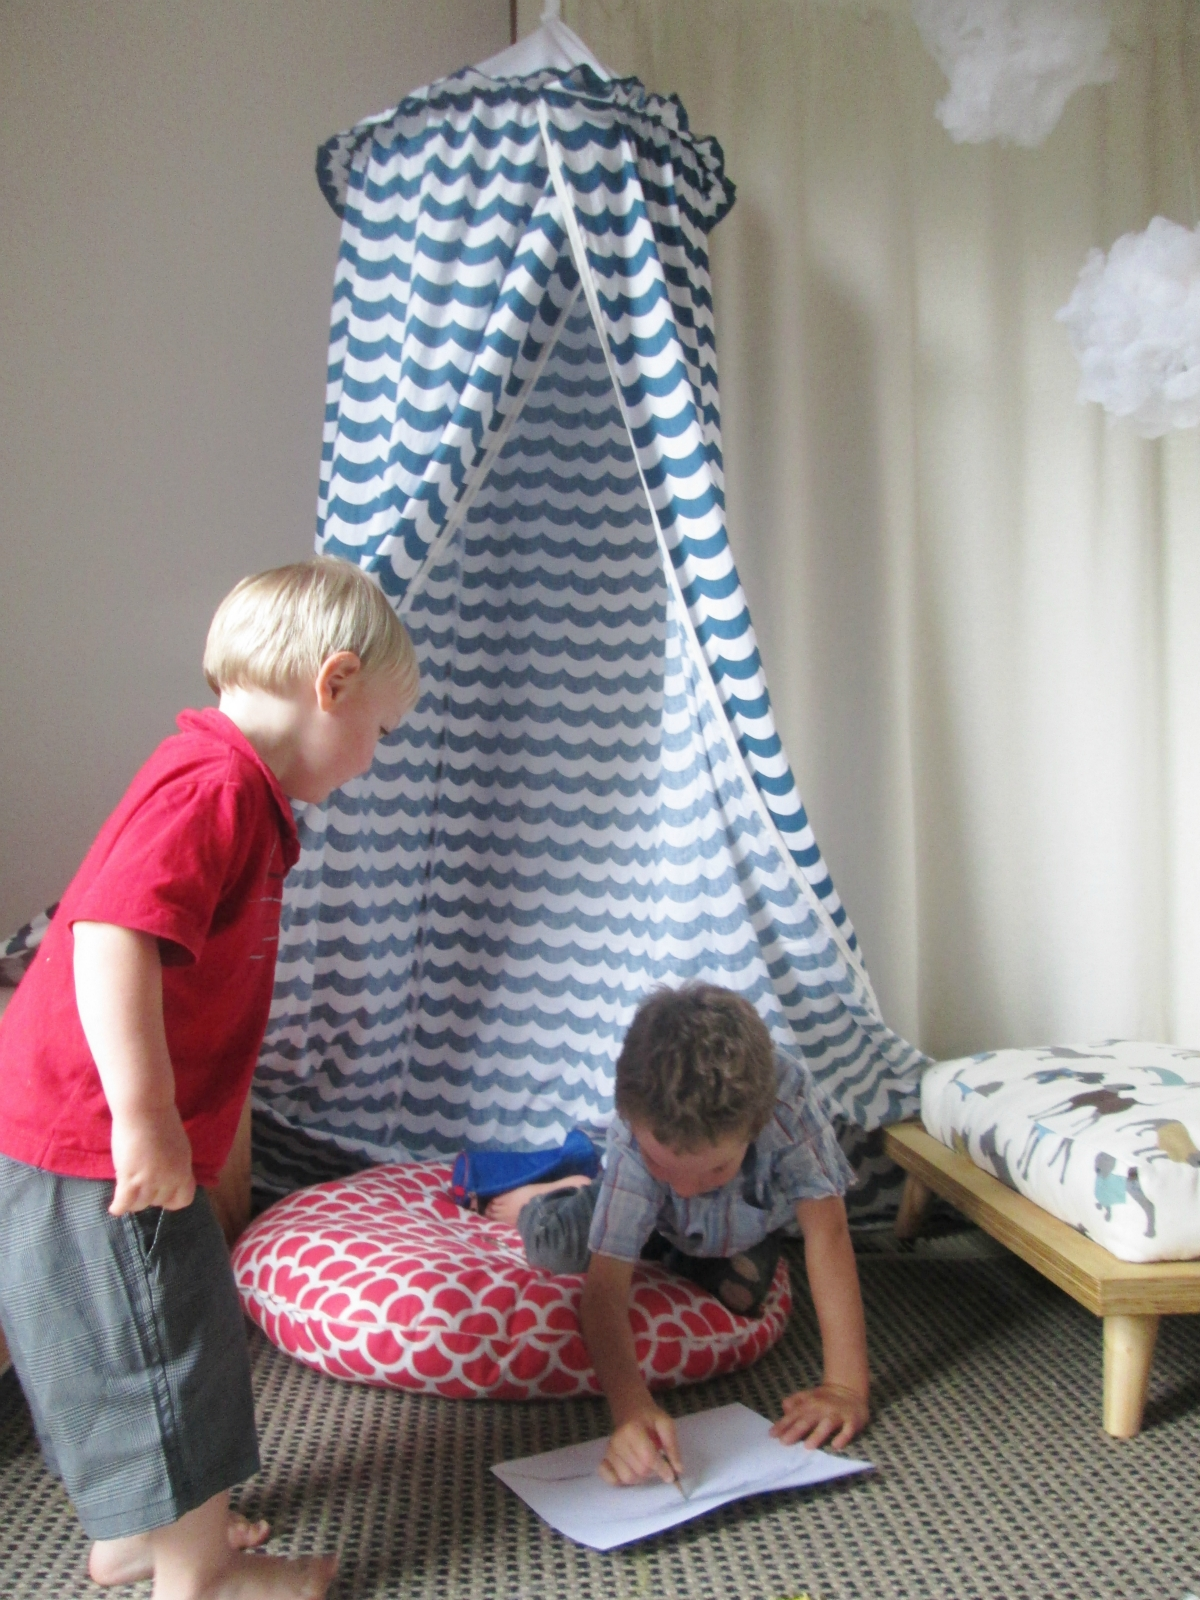 Kids hanging play tent or bed canopy | Felt